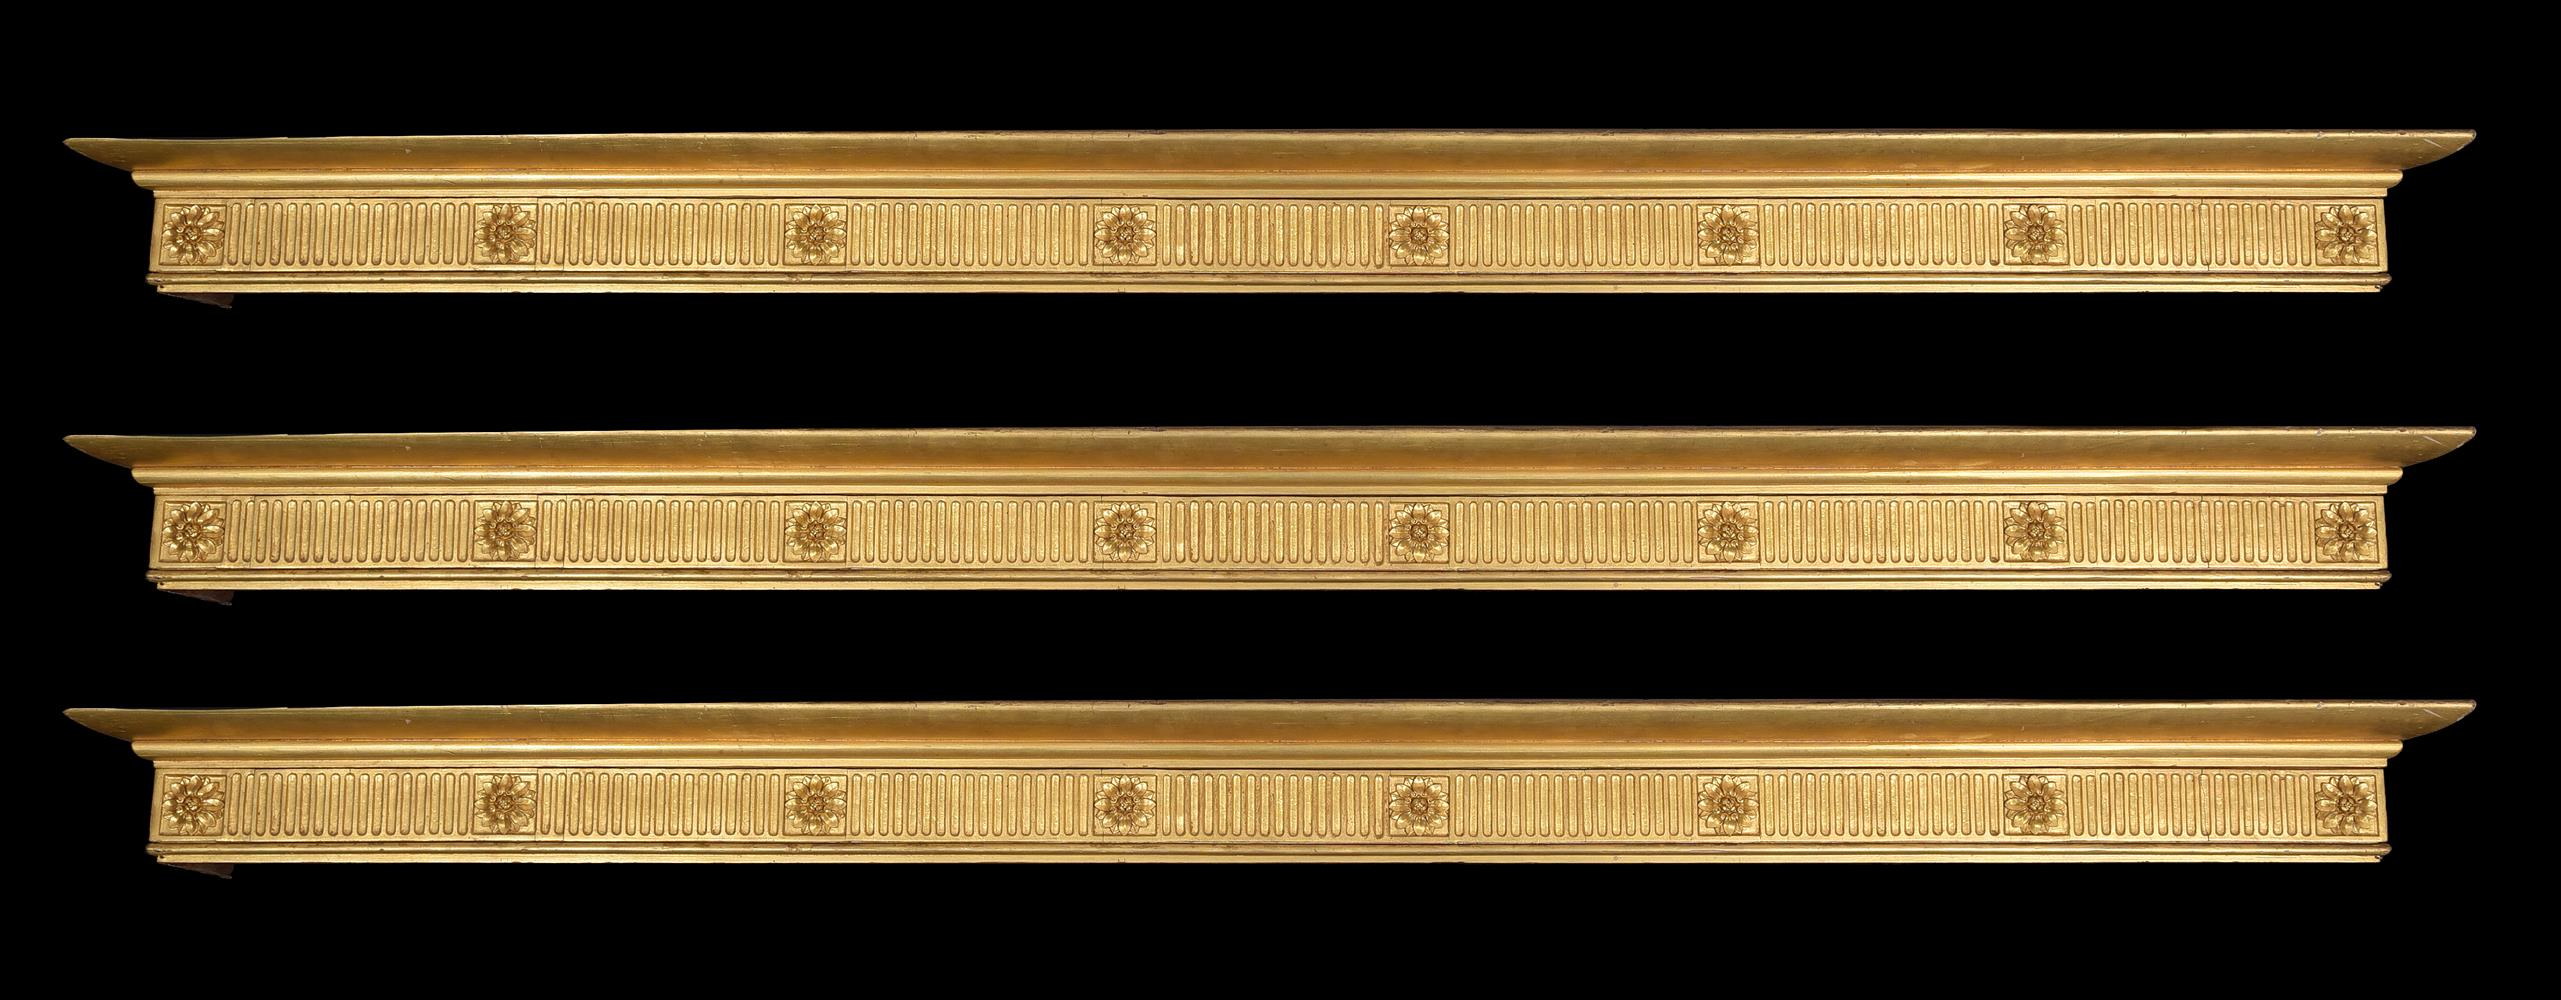 A set of three giltwood curtain pelmets, in George III style